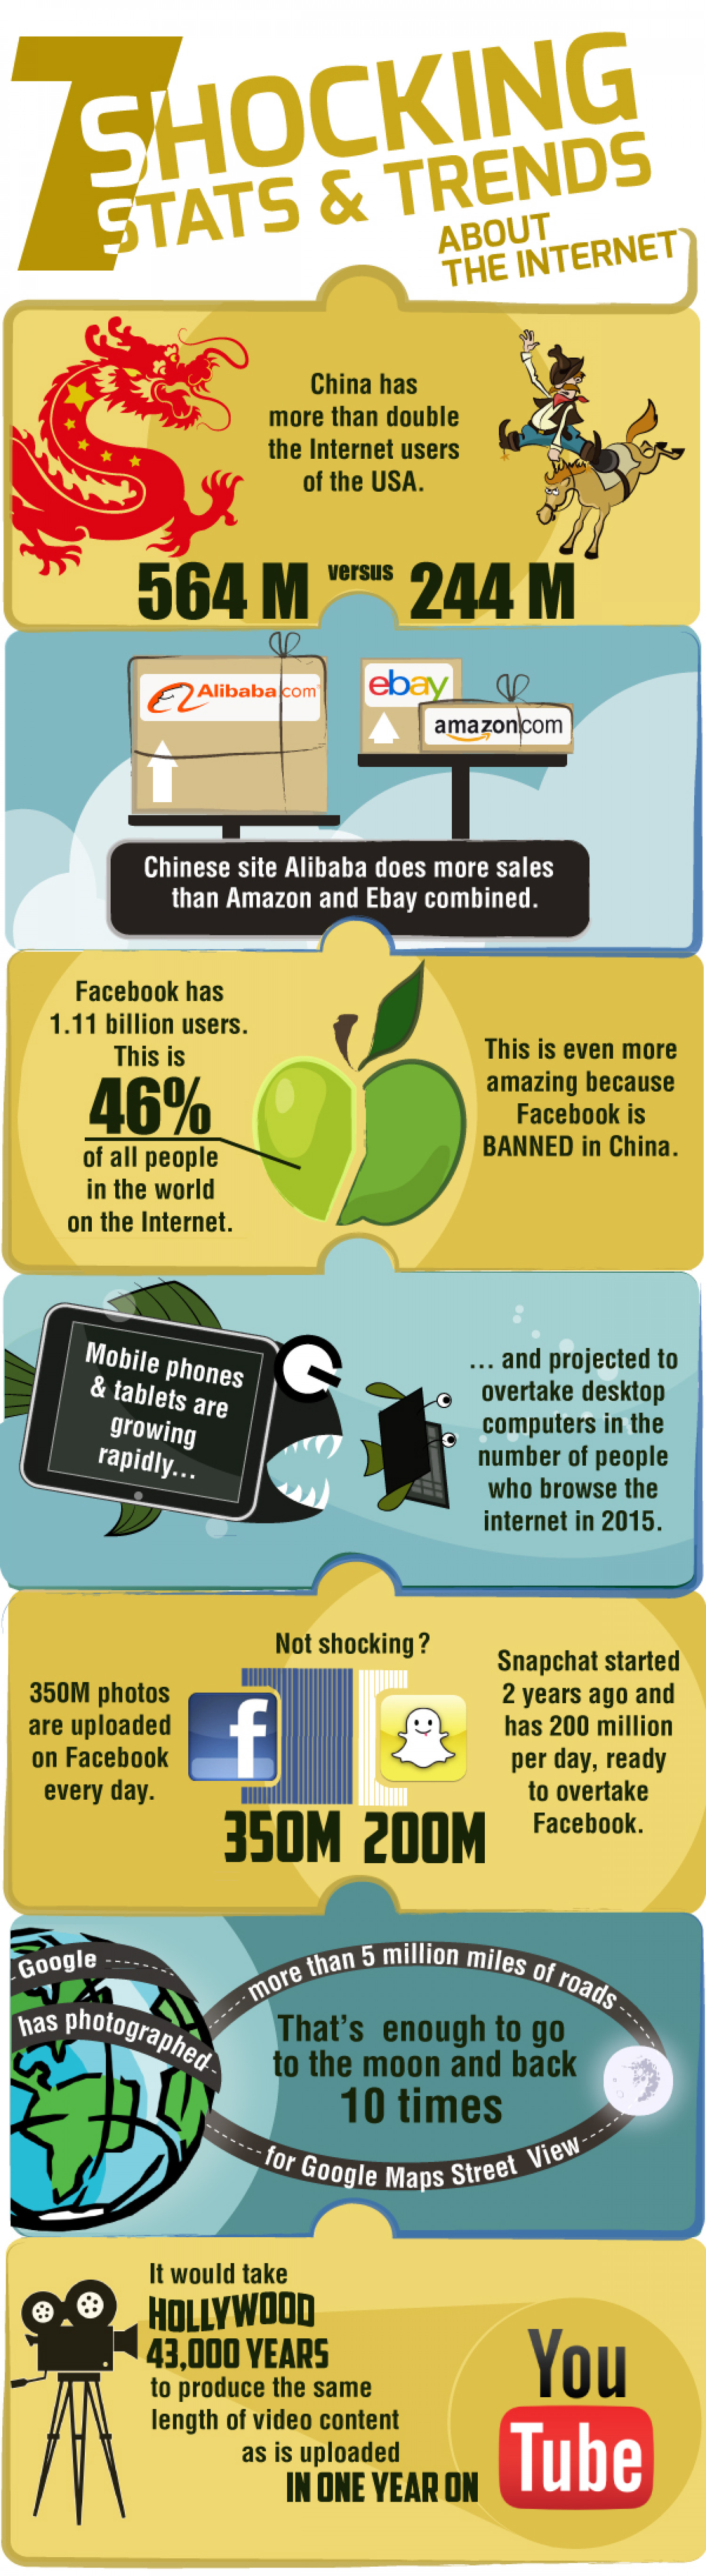 7 Shocking Stats & Trends about the Internet Infographic